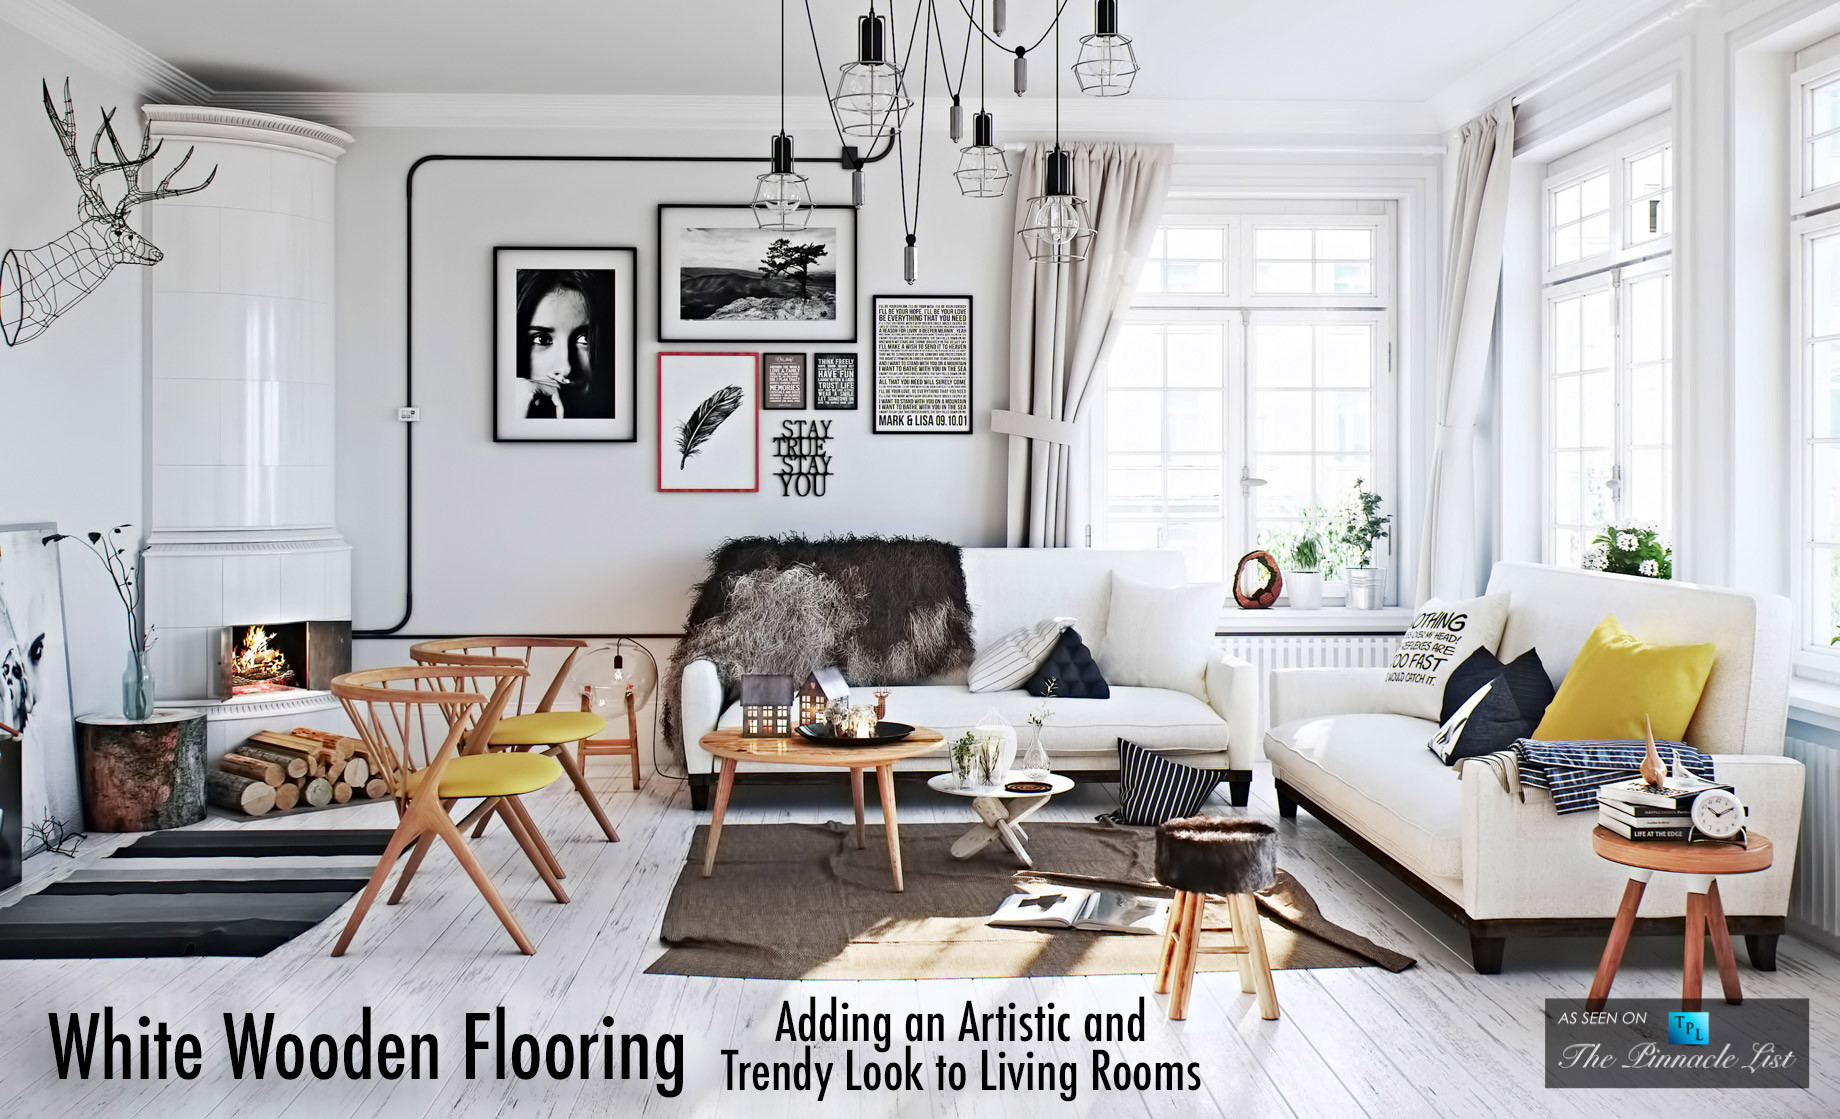 hardwood floor refinishing halifax ns of white wooden flooring adding an artistic and trendy look to living with white wooden flooring adding an artistic and trendy look to living rooms